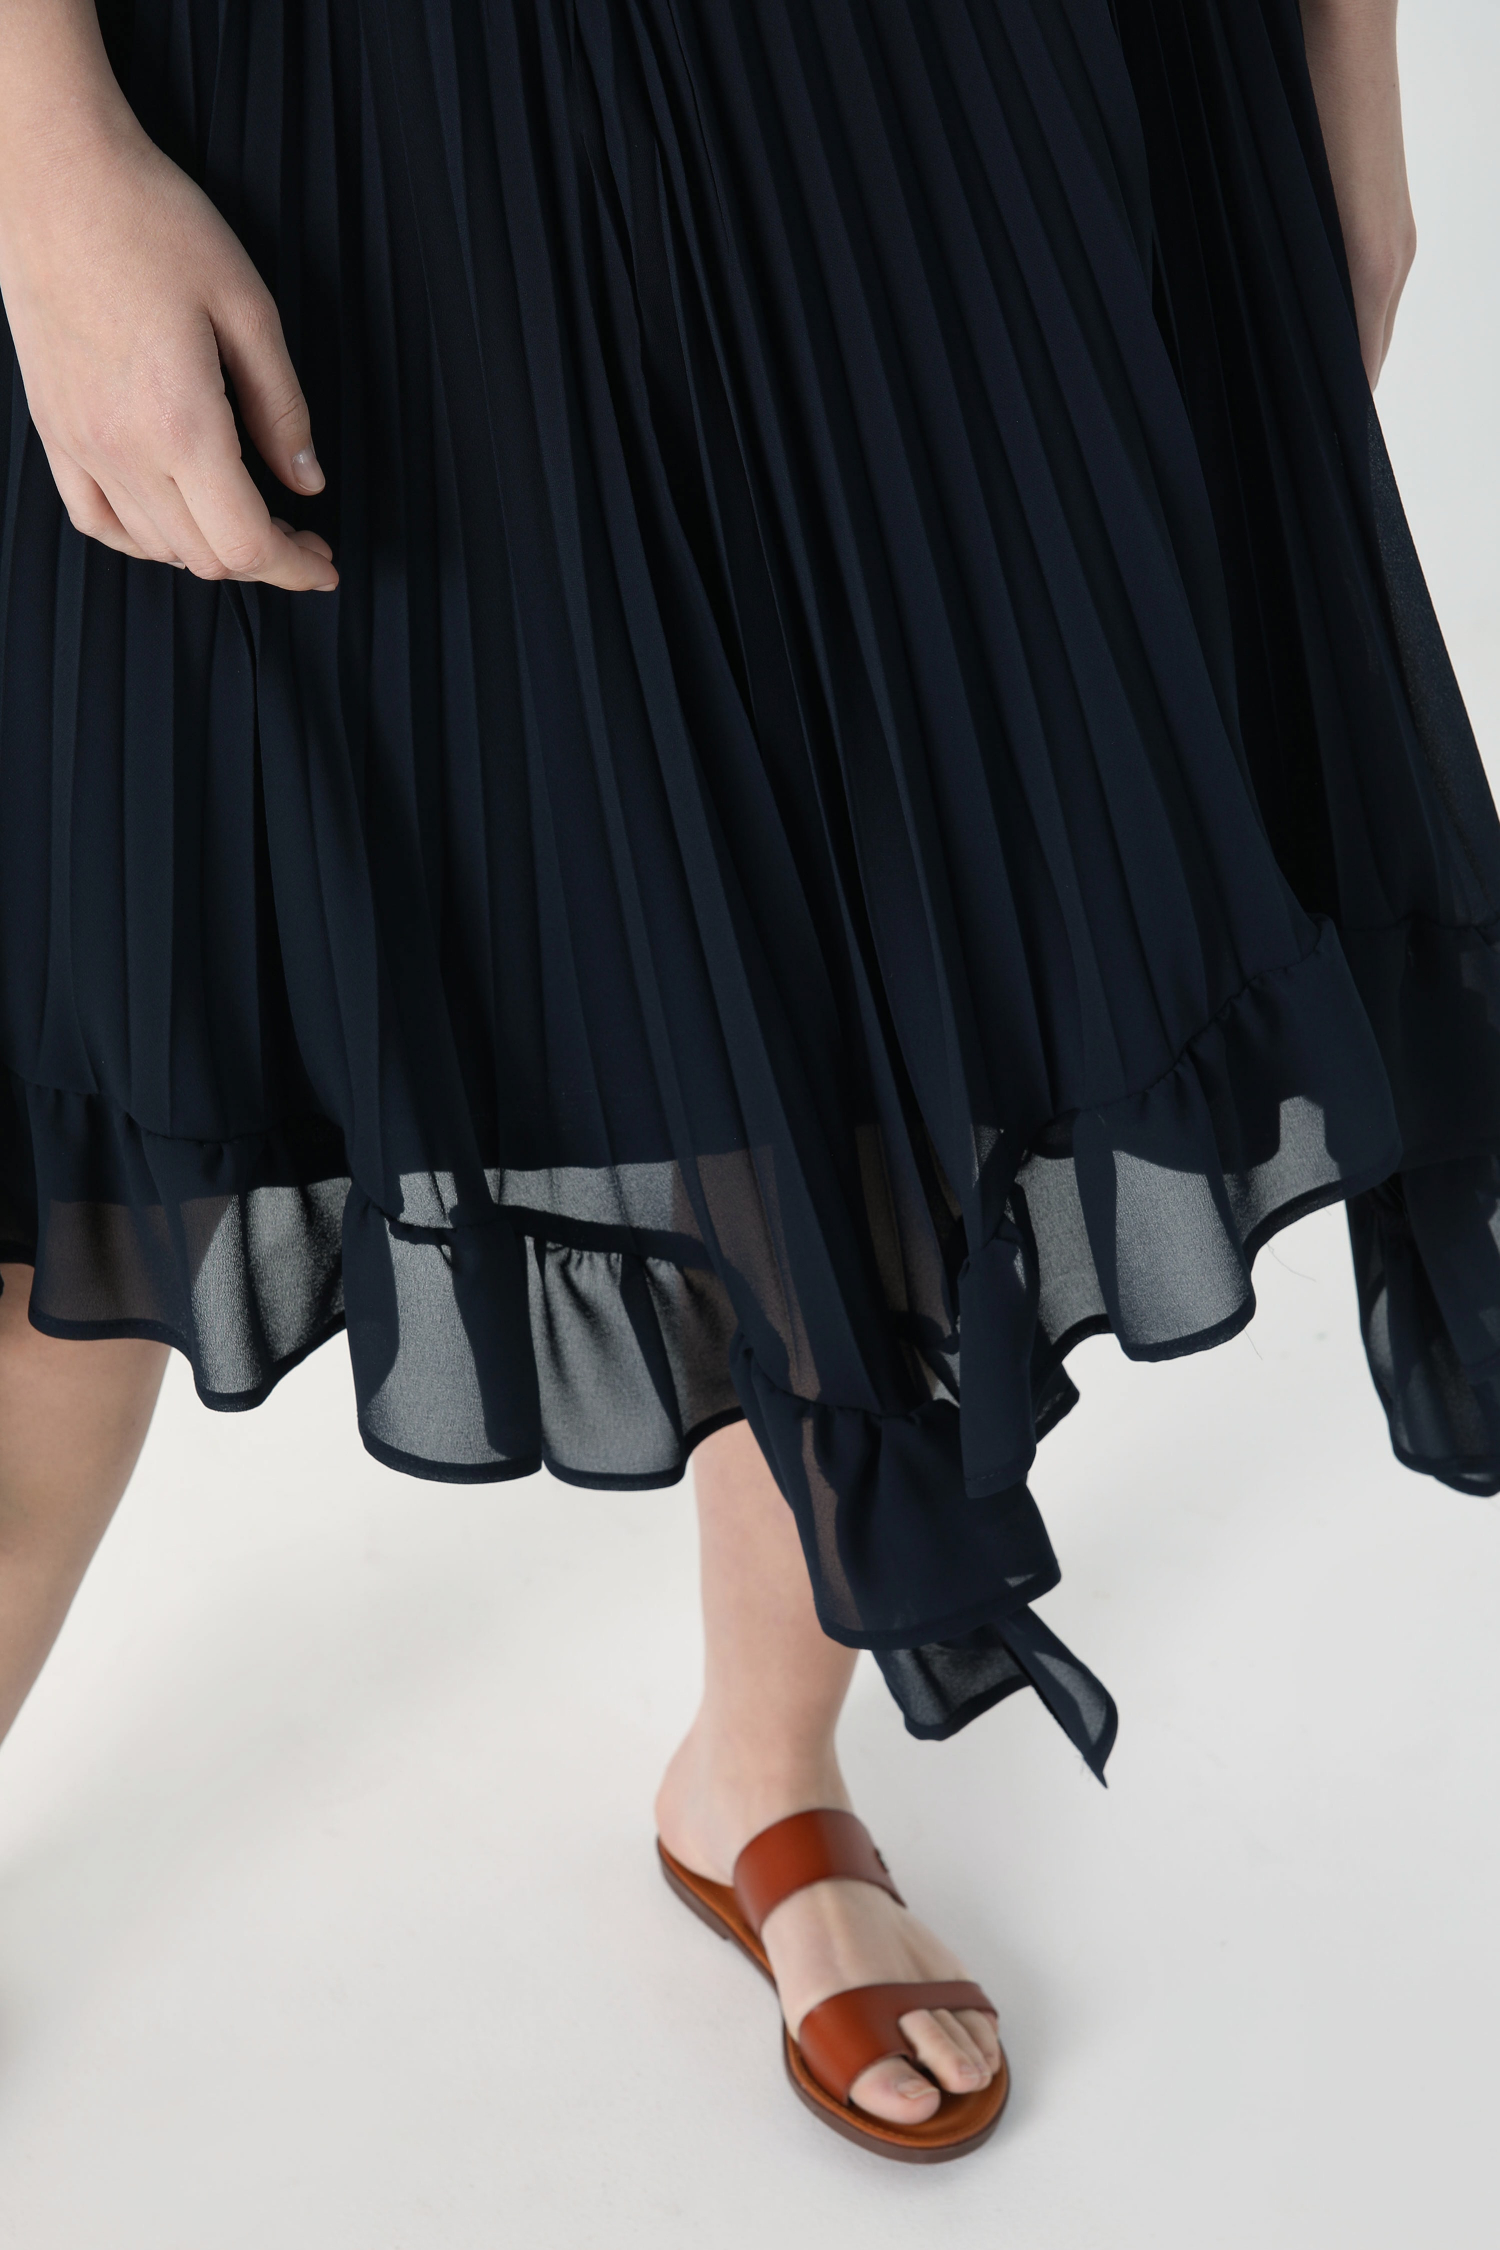 Pleated veil skirt with ruffle (expedition 25/31 March)